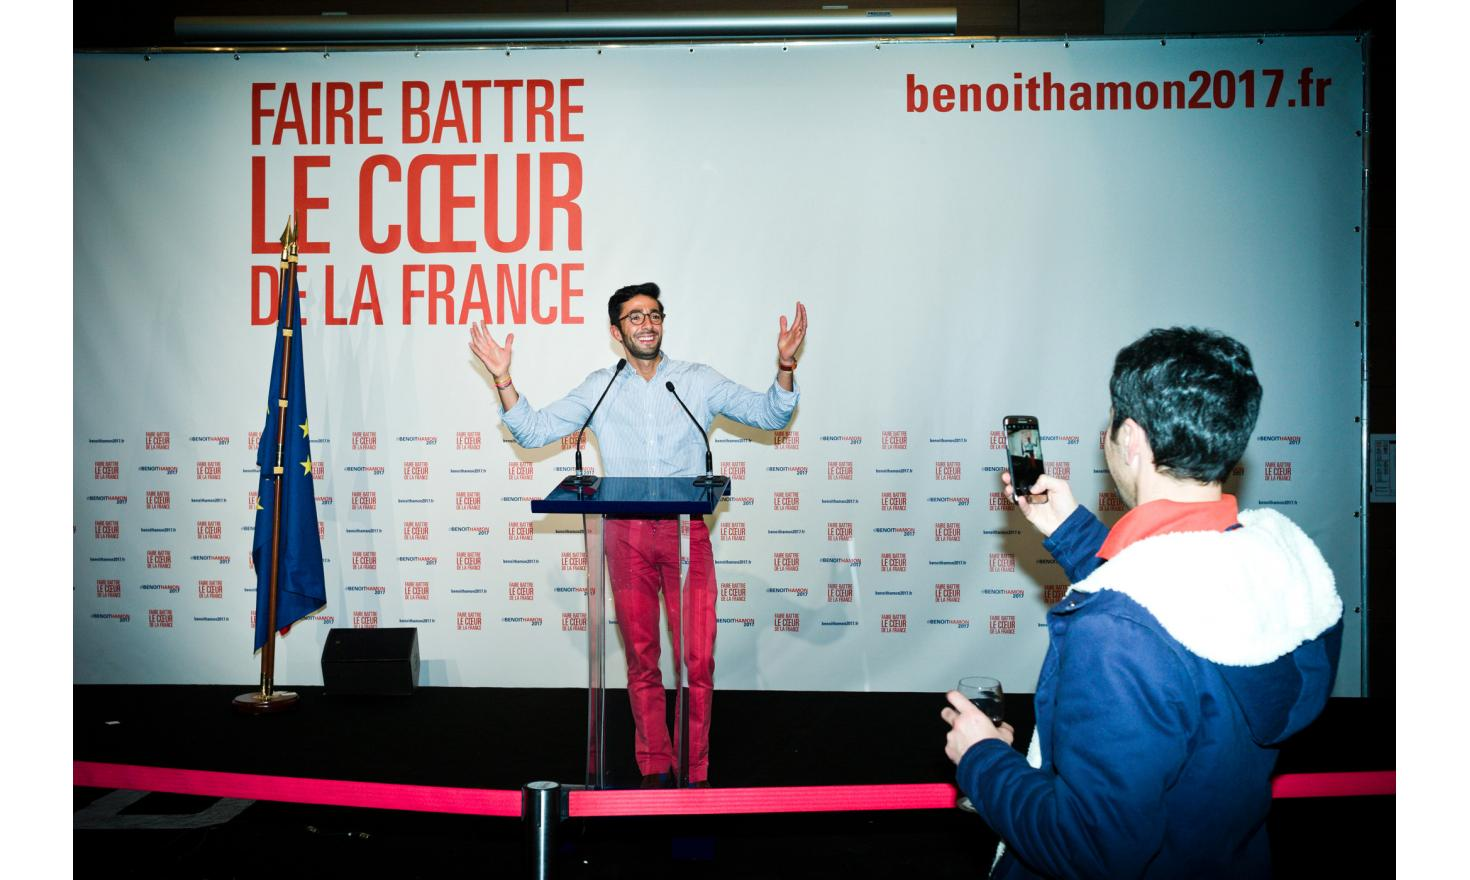 Evening of results with the mutuality with Benoît Hamon for the primaries of the socialist party.